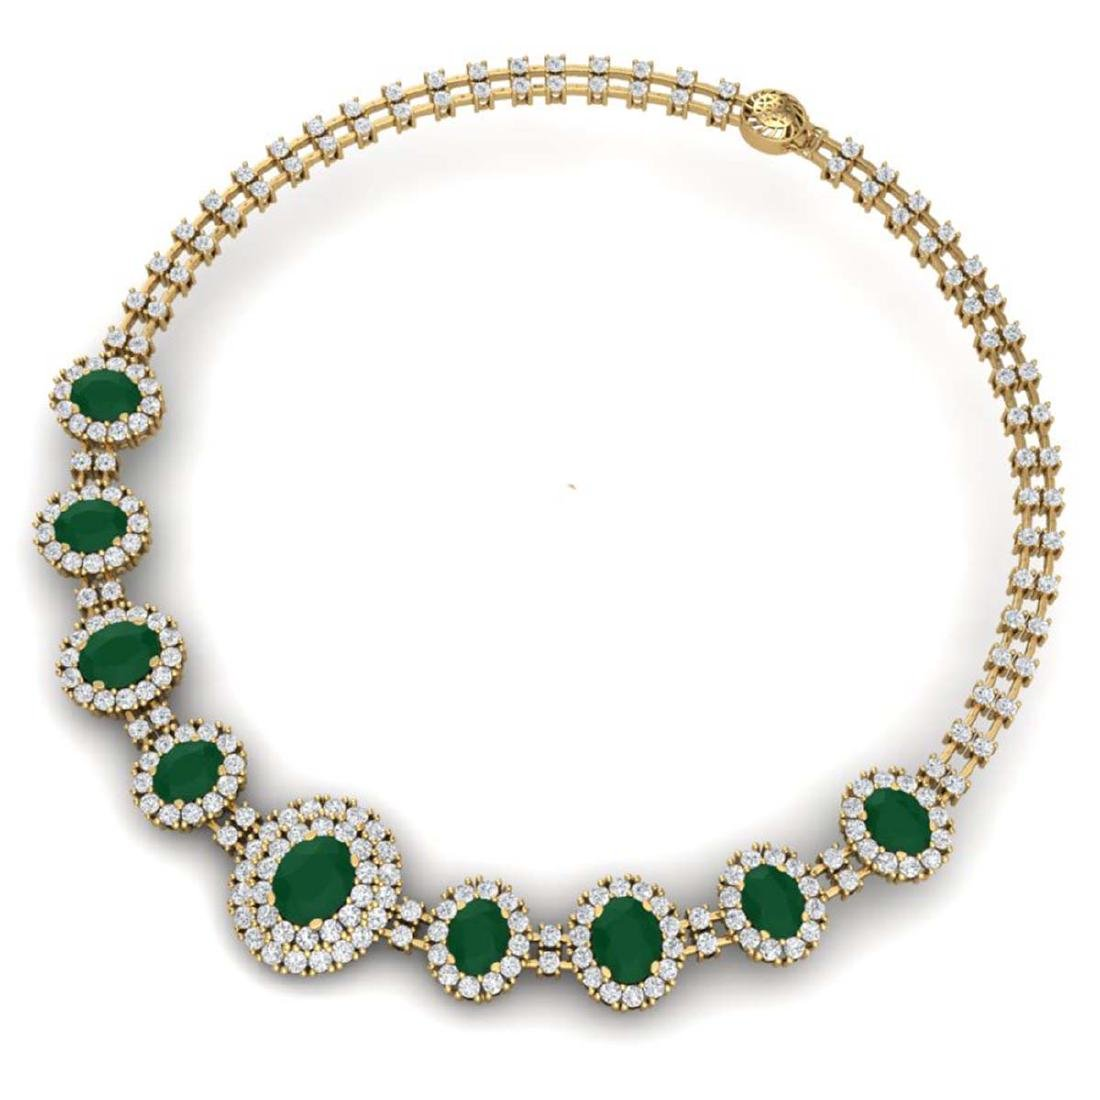 45.69 ctw Emerald & VS Diamond Necklace 18K Yellow Gold - 3